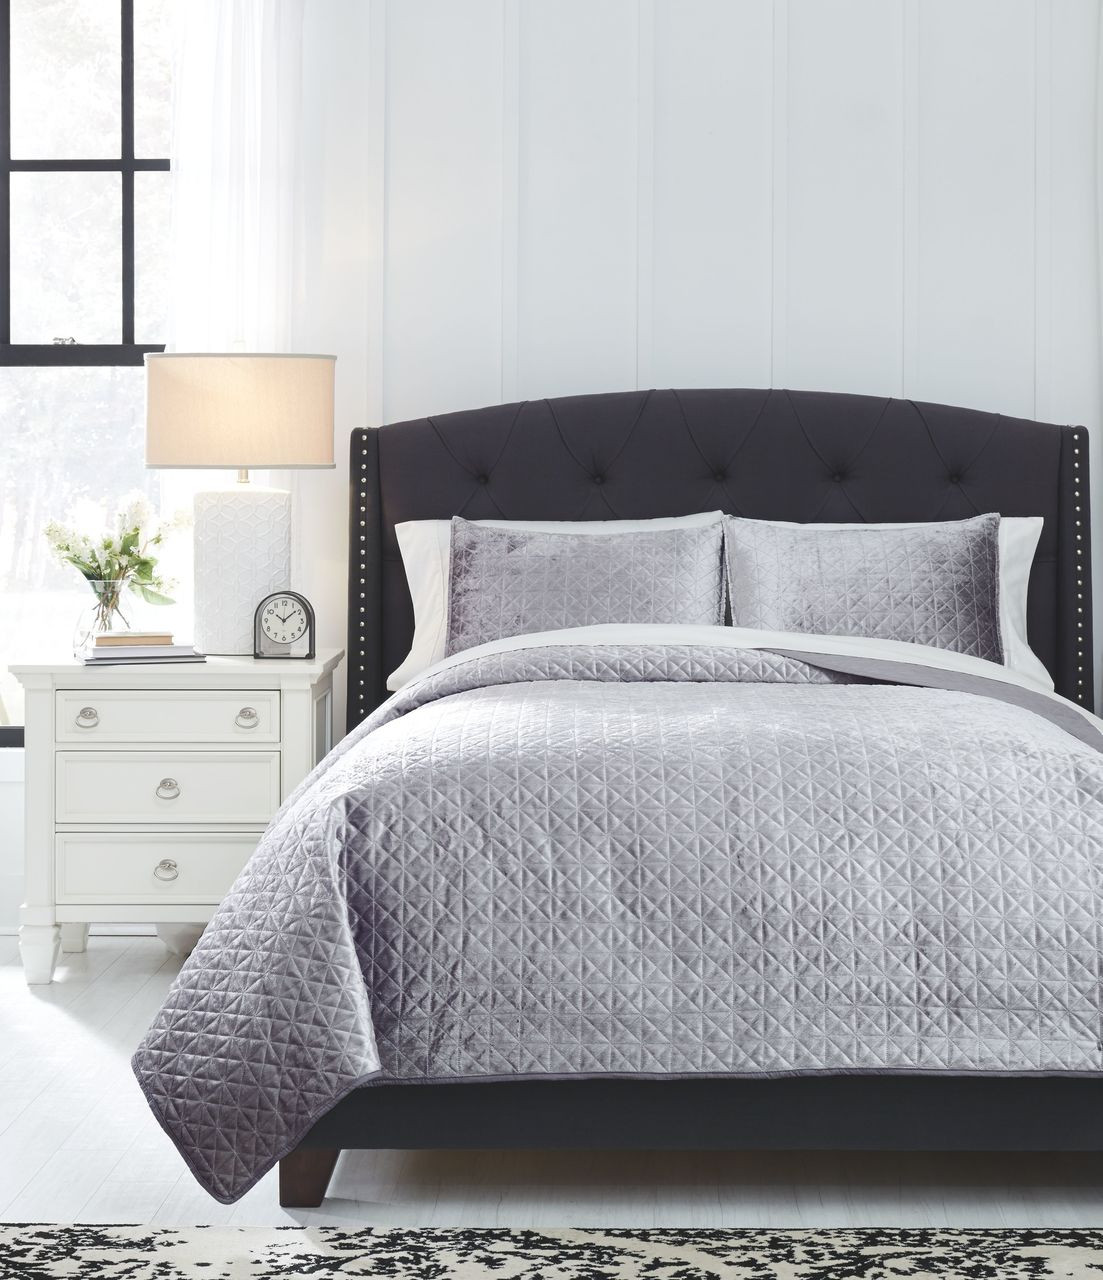 The Maryam Gray King Coverlet Set Available At Barnett And Swann In Athens Al